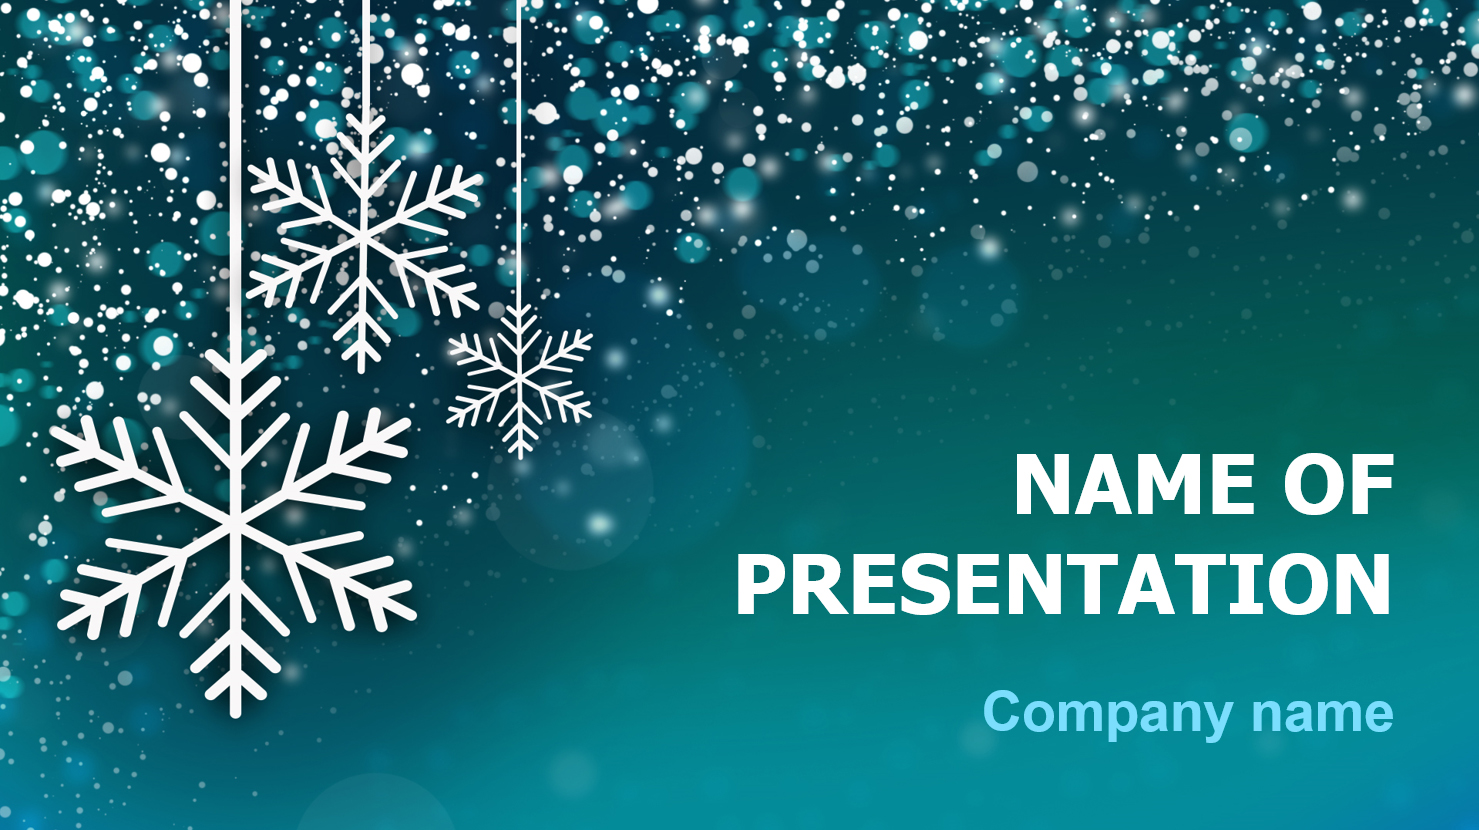 Download free snow snowflakes powerpoint template and theme for your snow snowflakes powerpoint template and theme toneelgroepblik Choice Image